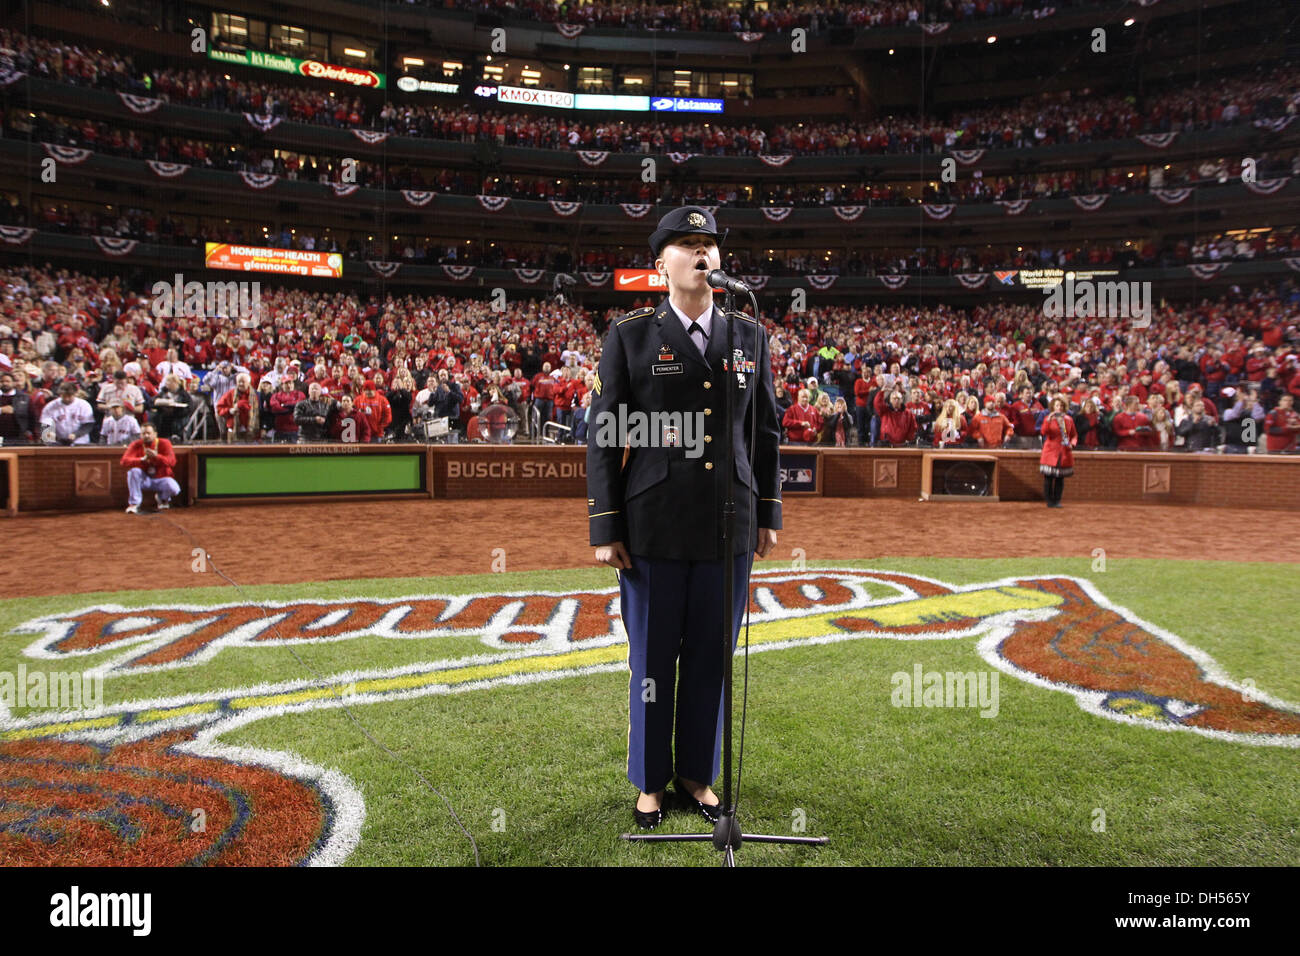 Sgt. Christine Permenter, member of the 399th Army Band, sings 'God Bless America' during the 7th inning stretch at Game 4 of the 2013 World Series, Oct. 27, 2013. - Stock Image